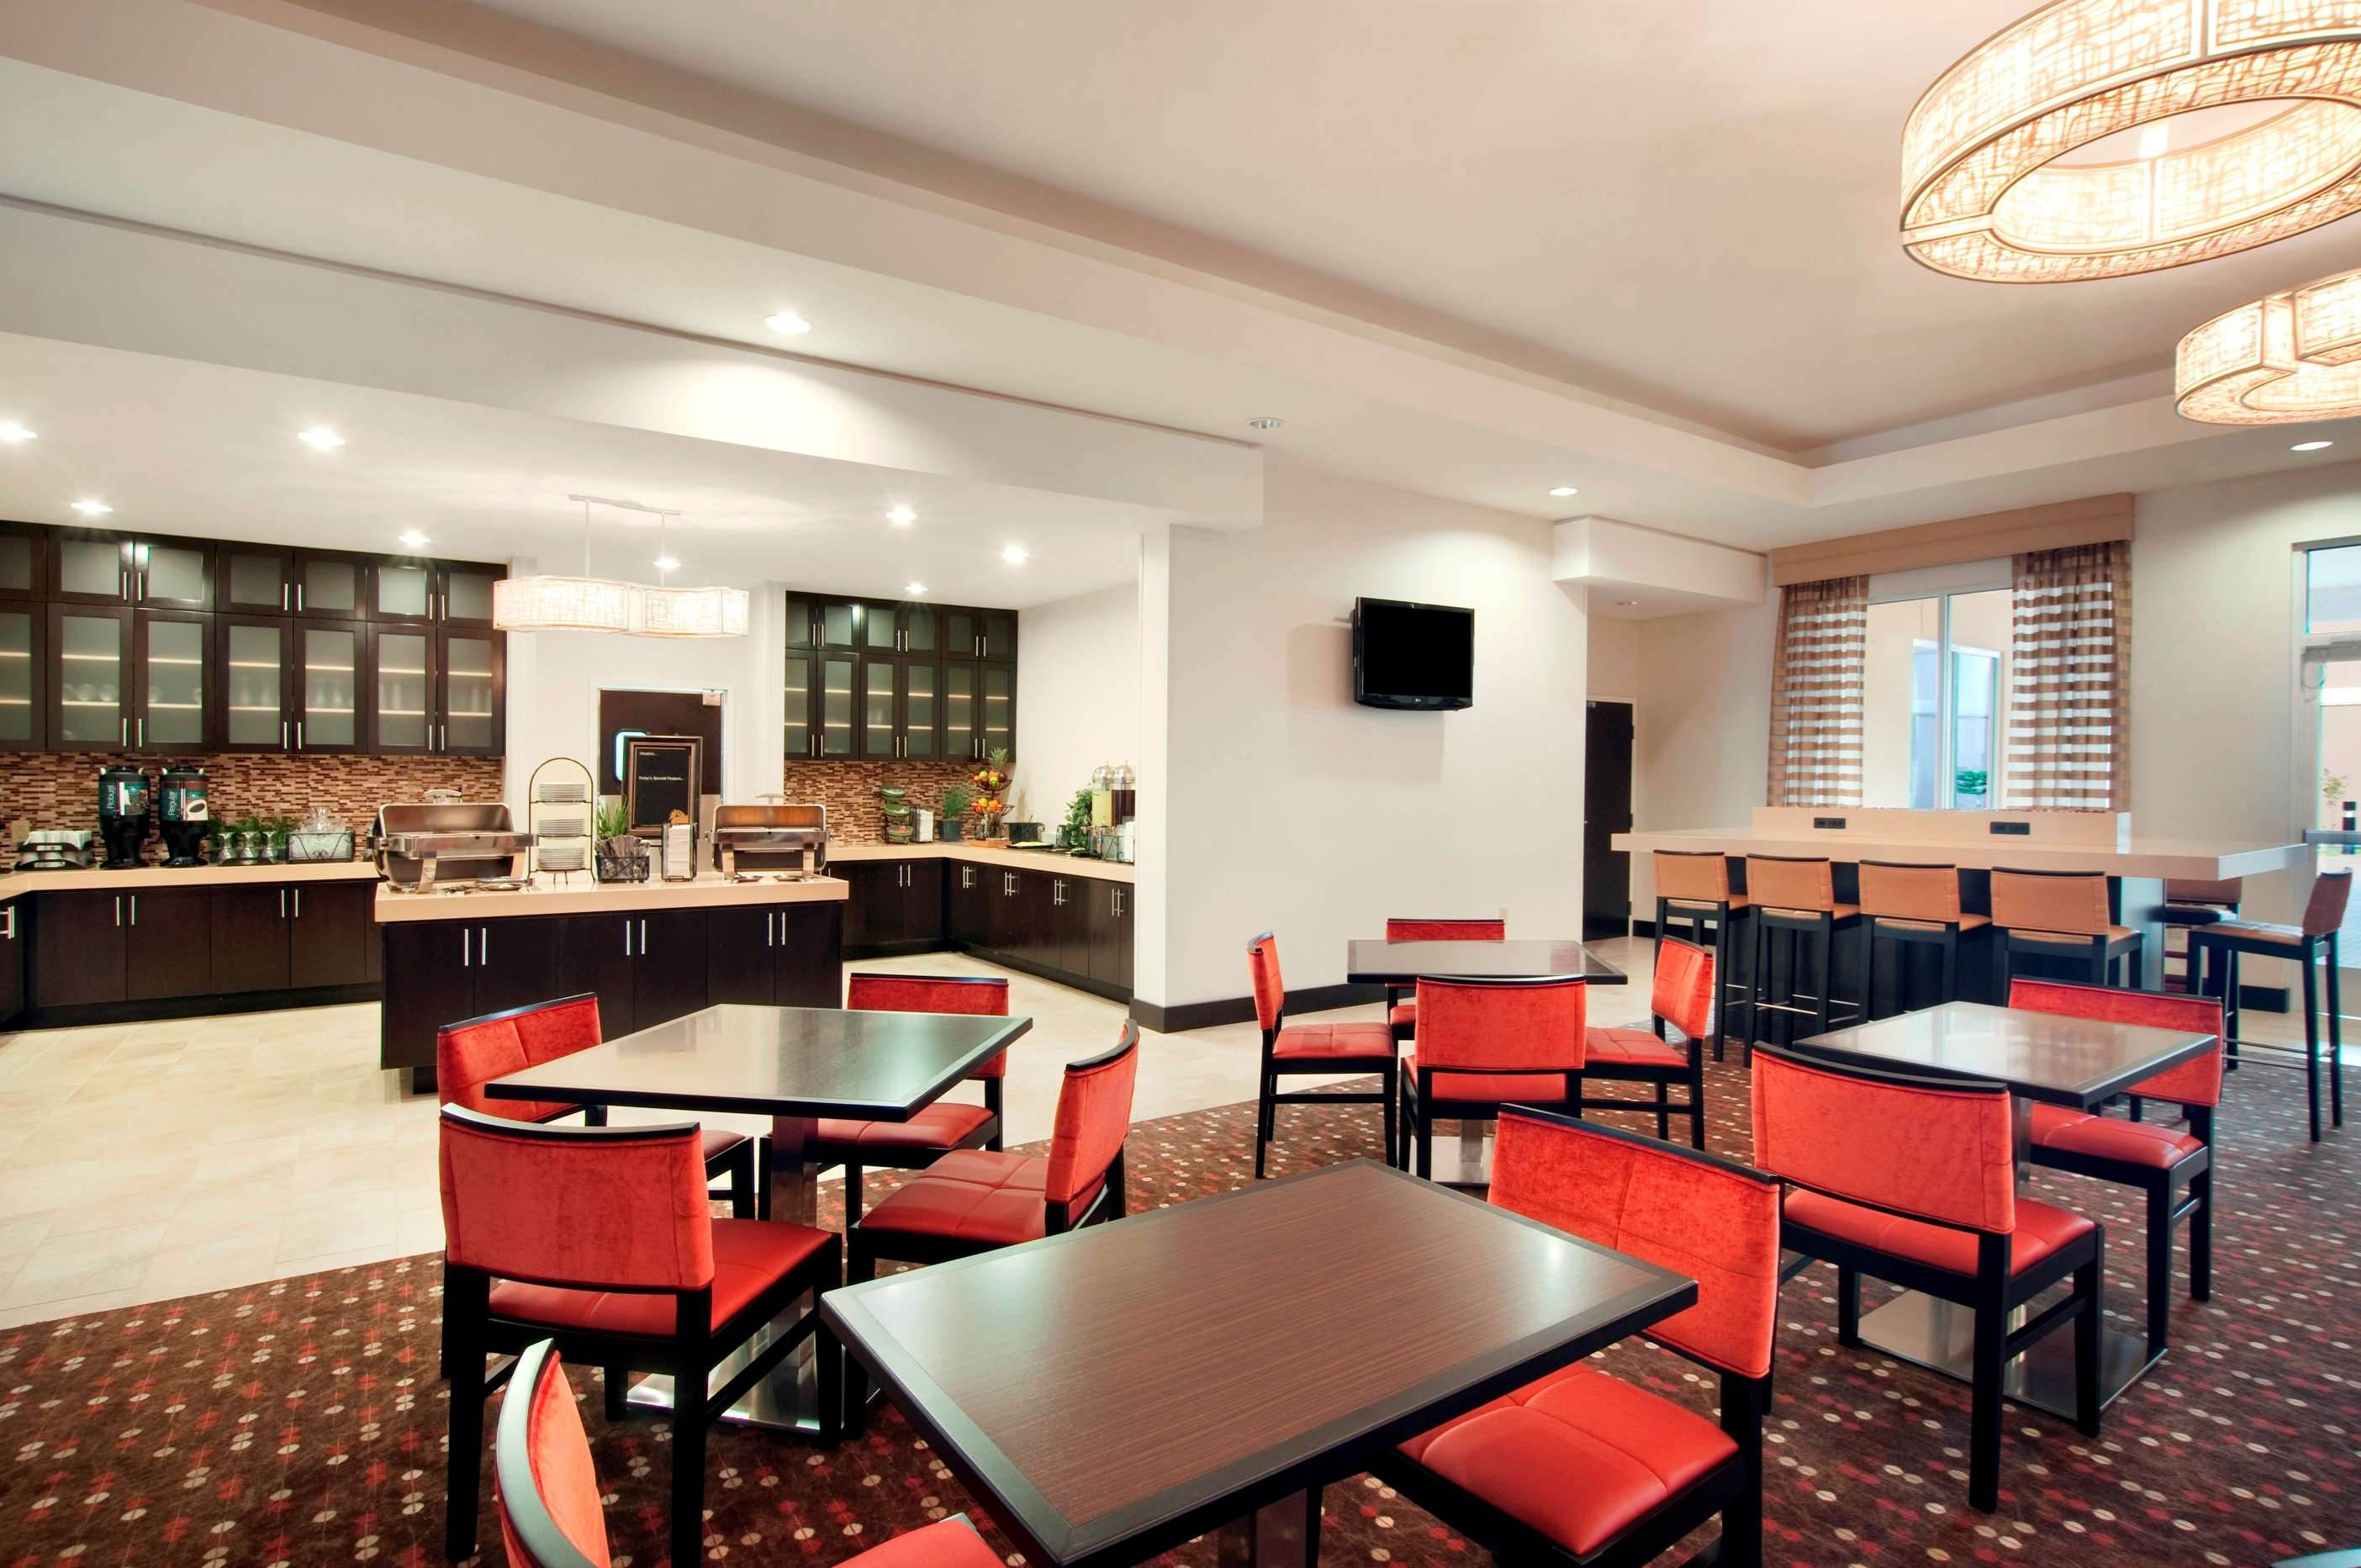 Homewood Suites by Hilton Fort Worth West at Cityview, TX image 3